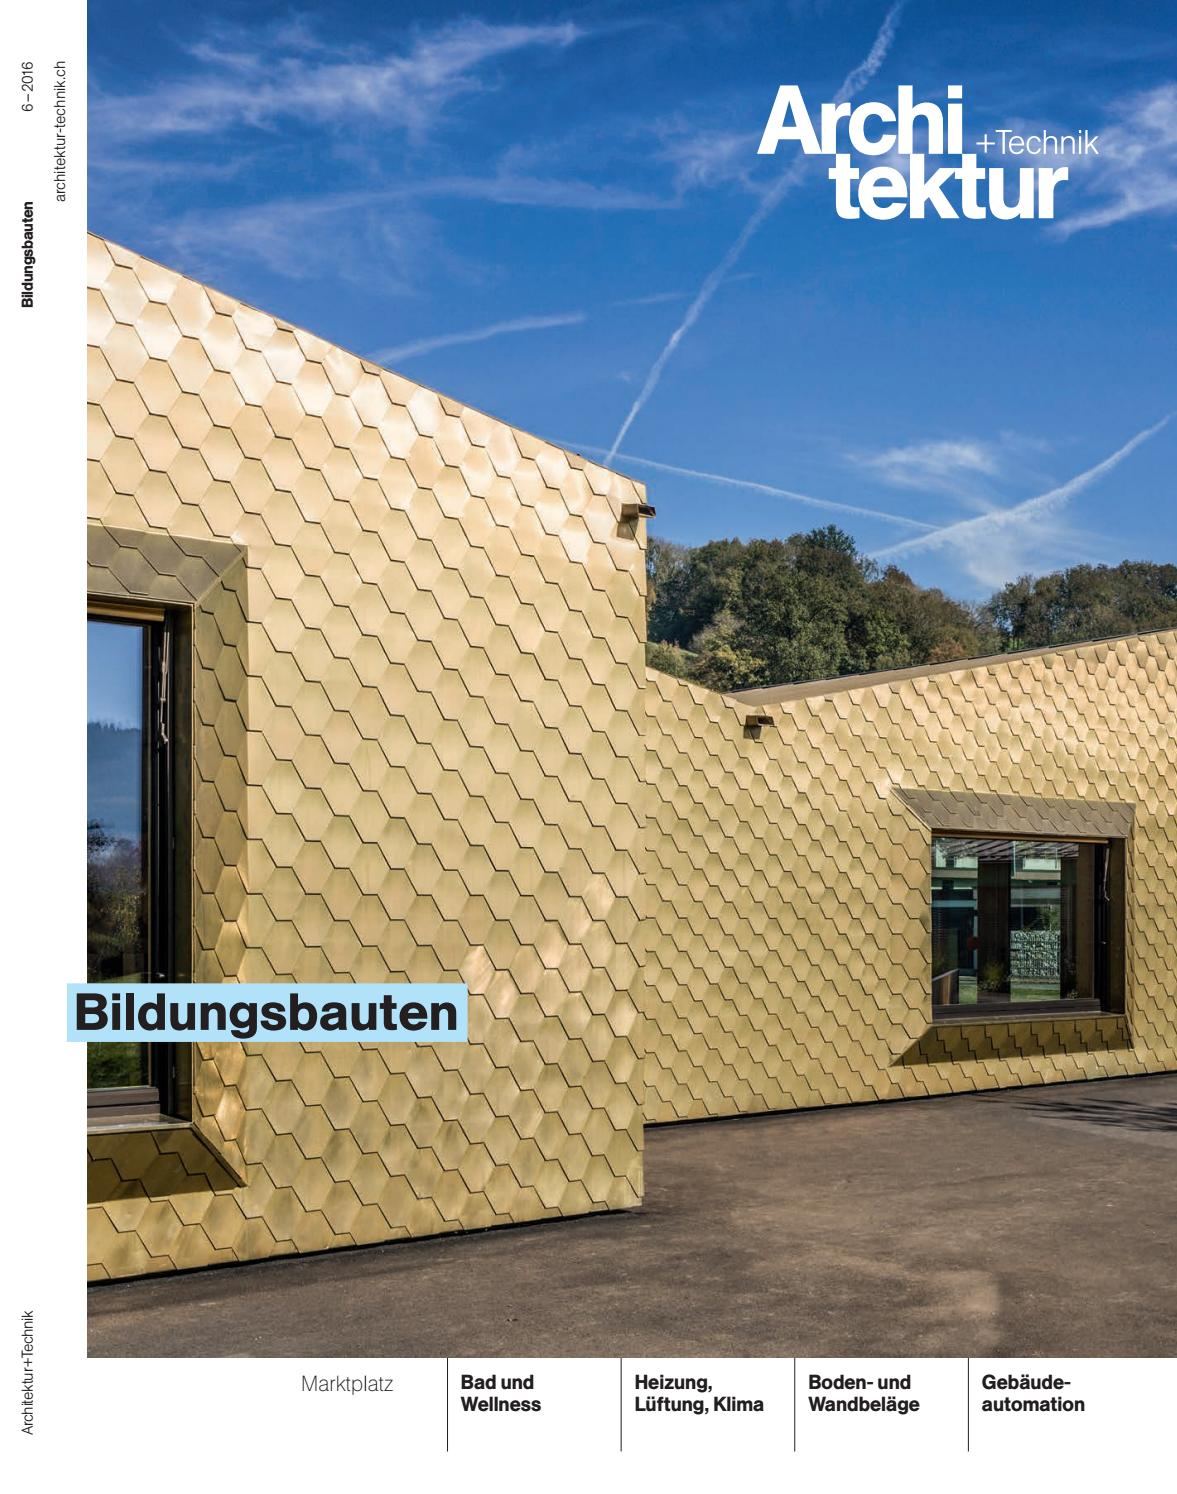 Architektur+Technik 06 2016 by BL Verlag AG - issuu